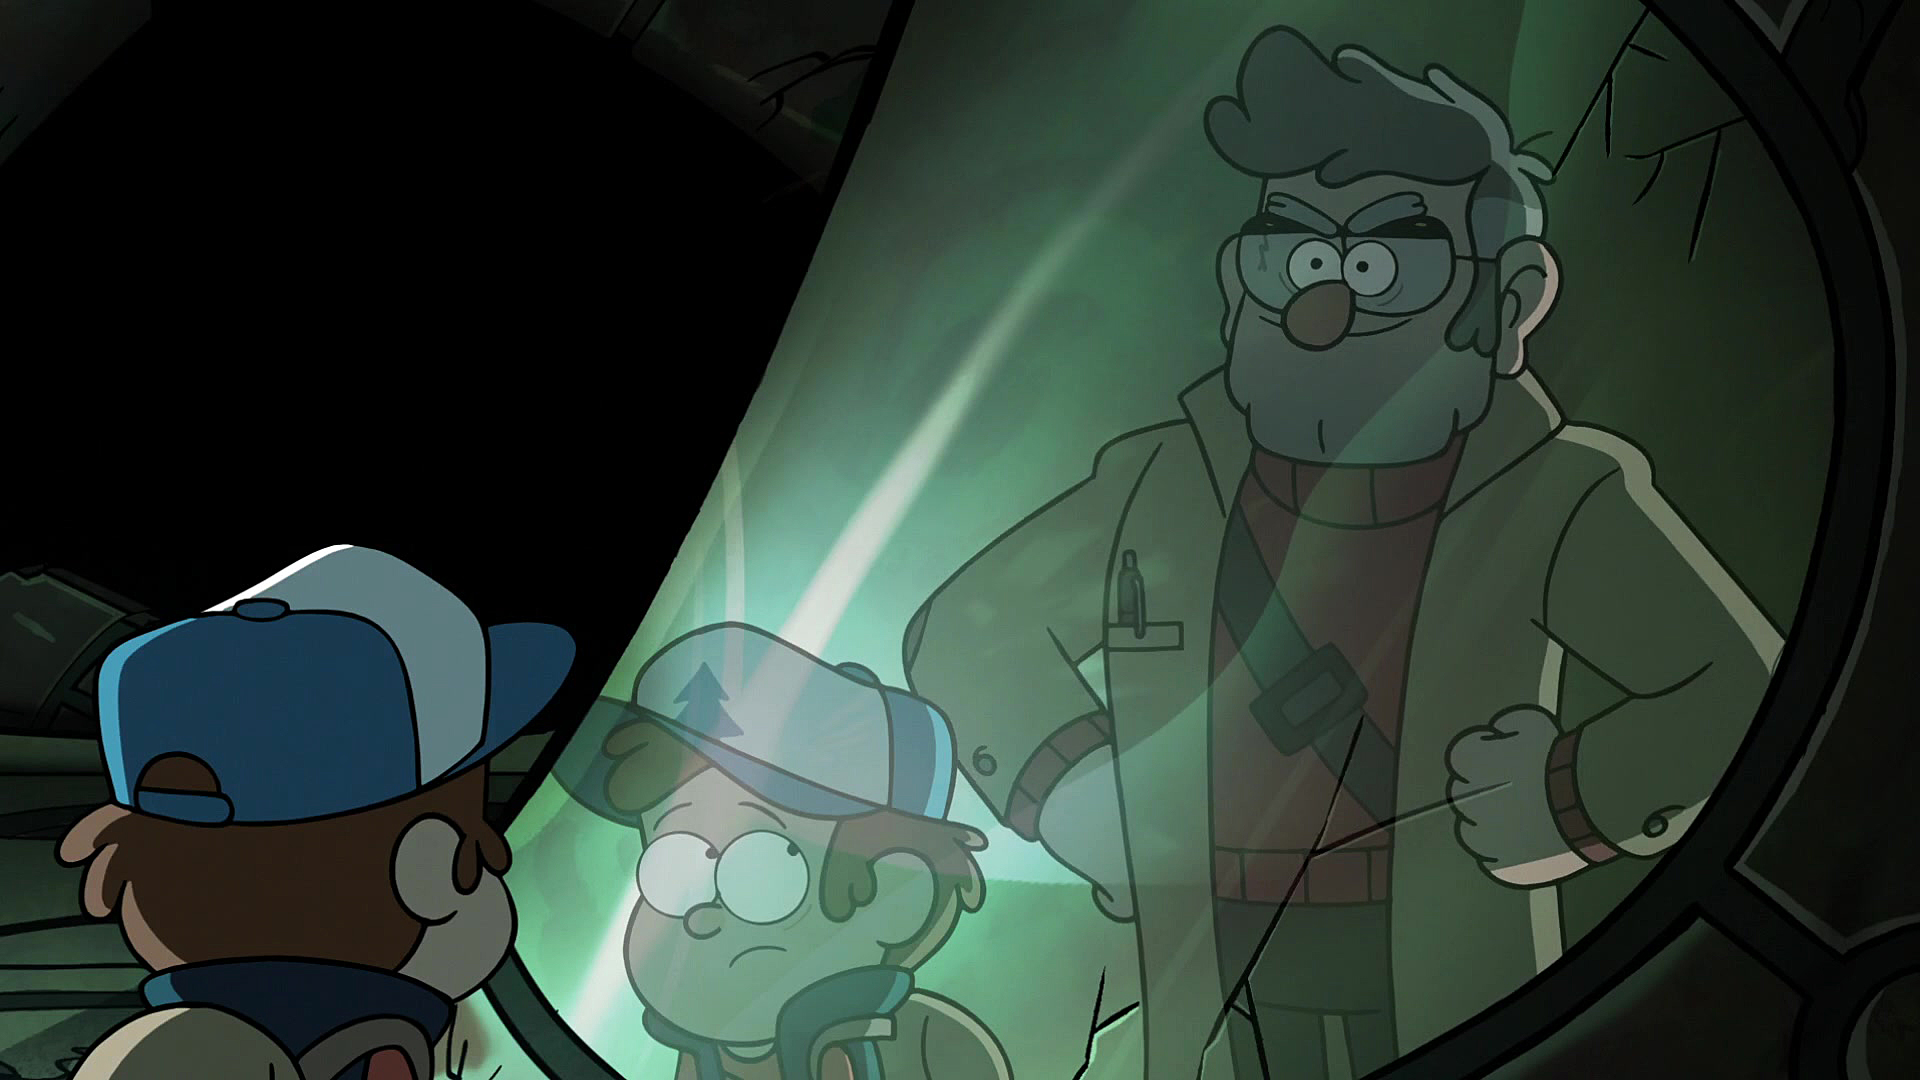 Dipper and Mabel vs. the Future